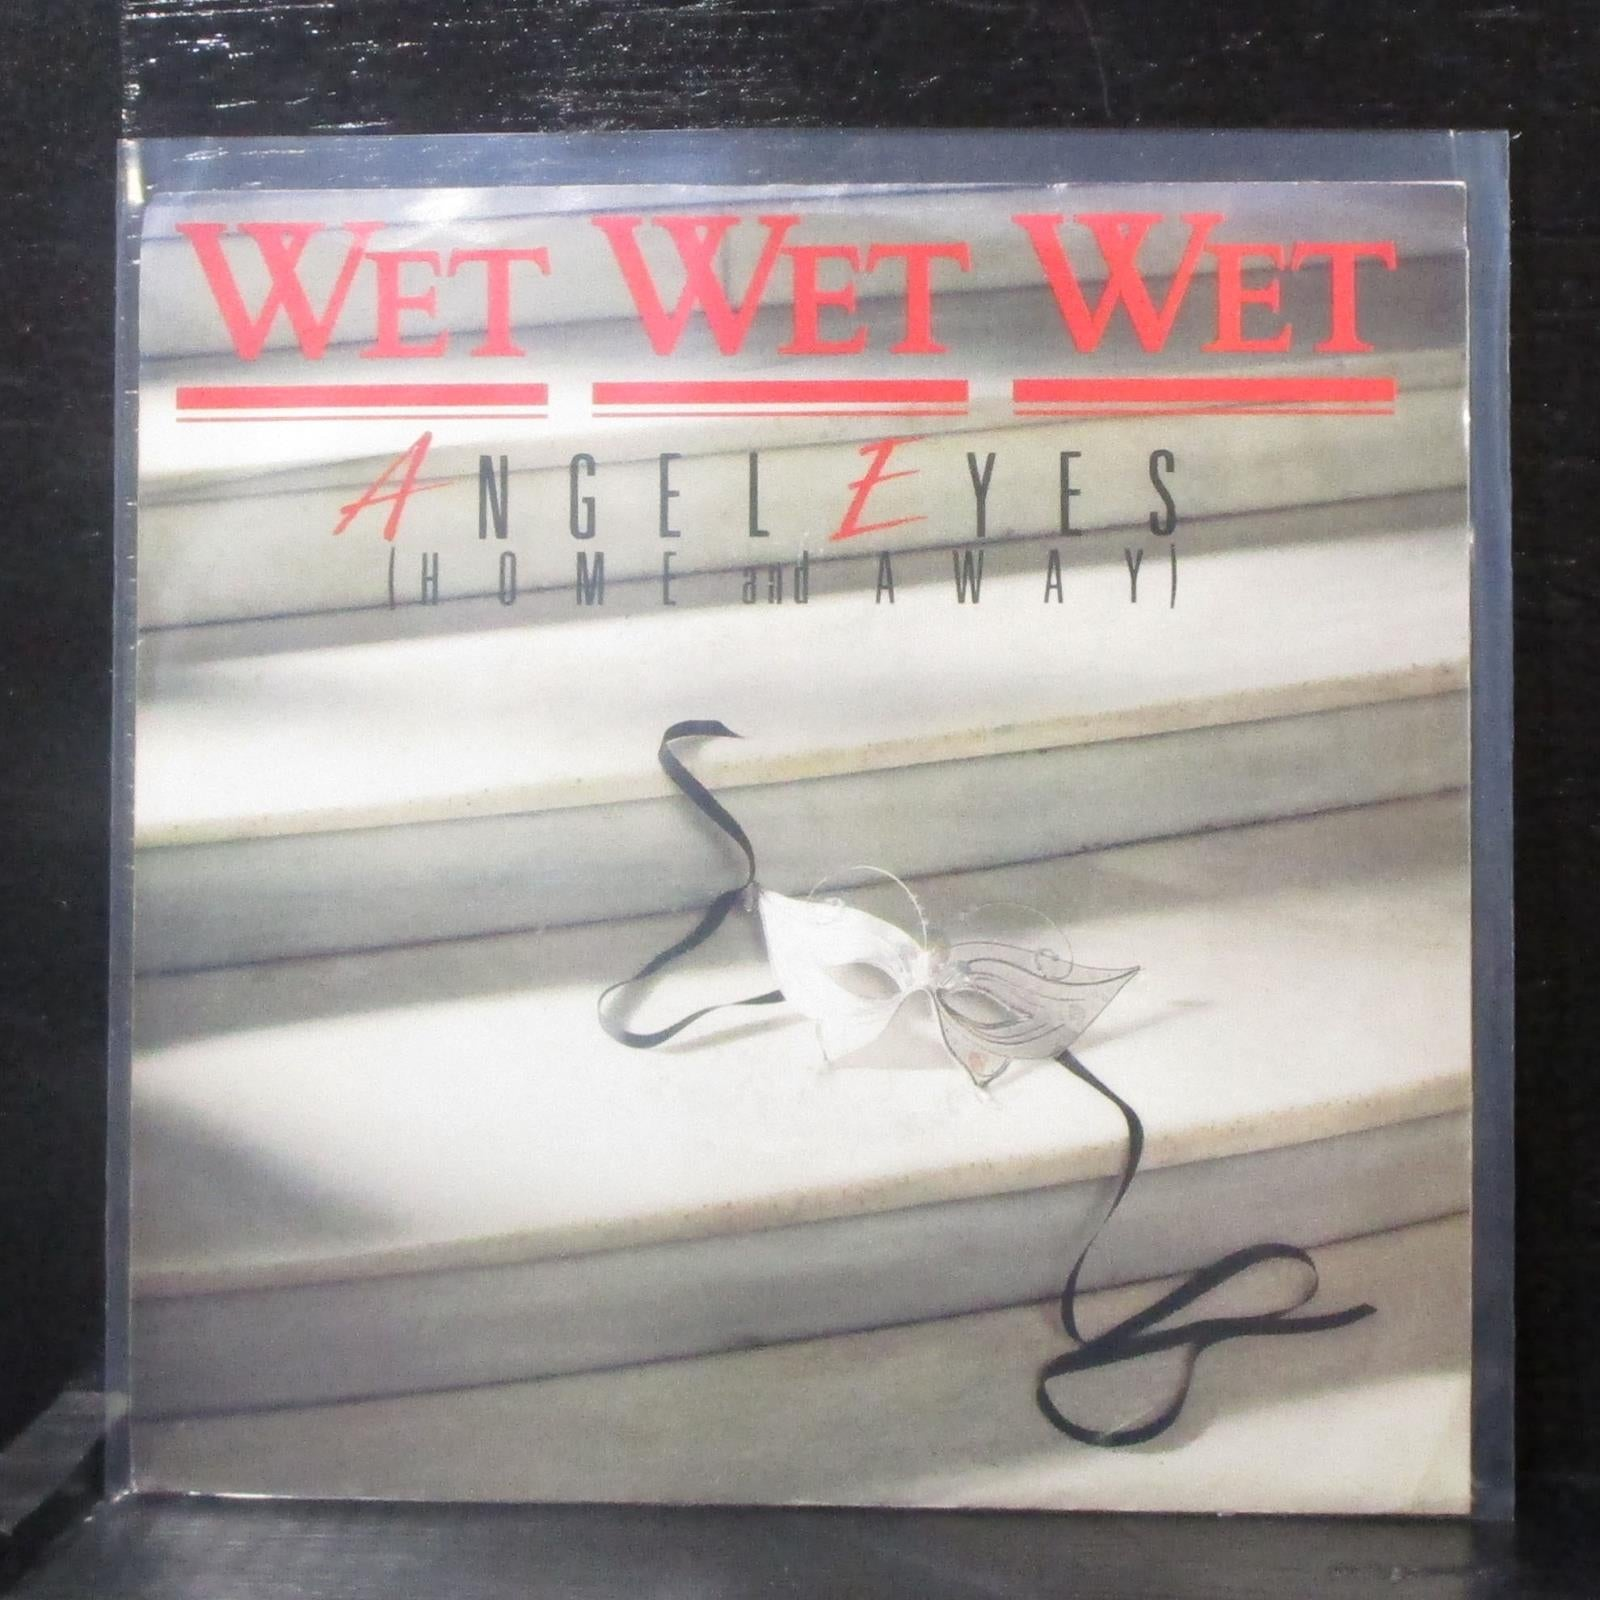 "Wet Wet Wet - Angel Eyes (Home And Away) 7"" Mint- Promo Vinyl 45 UNI-50006 USA"